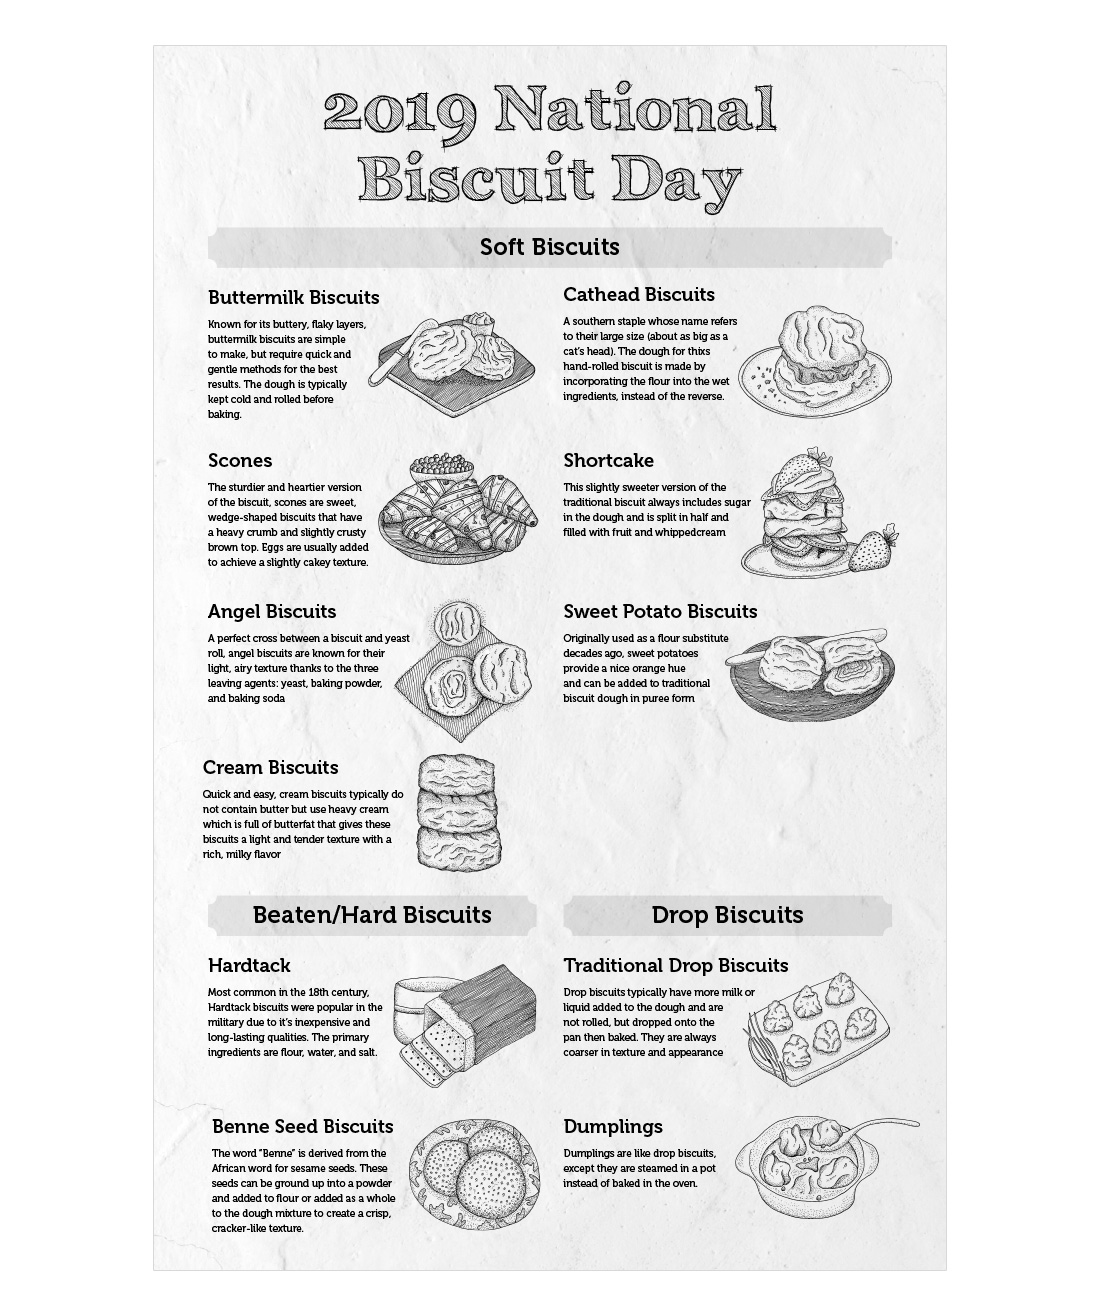 National biscuit day web page